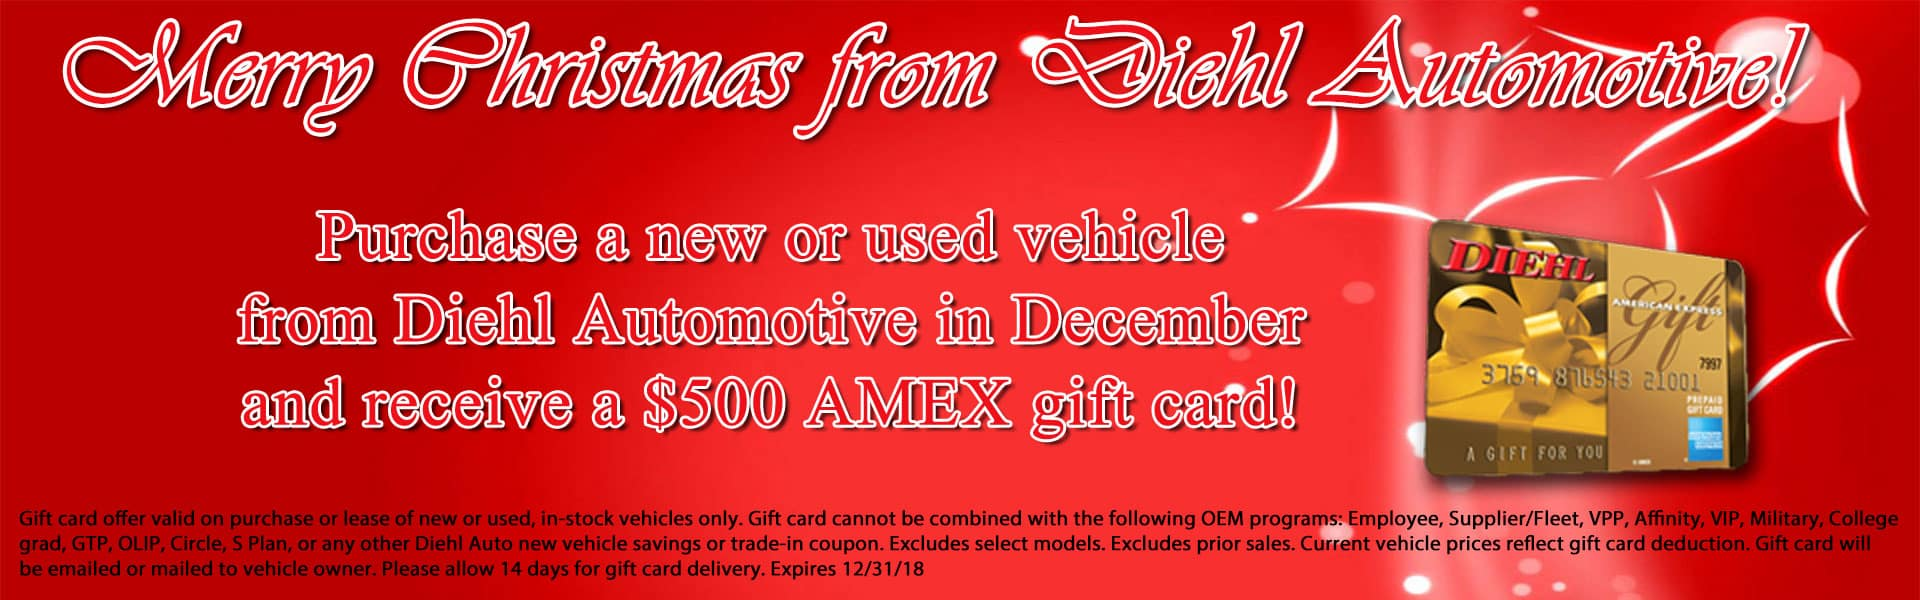 Diehl Automotive Chrysler Jeep Dodge Ram Toyota Volkwagen Chevrolet Buick Cadillac $500 gift card for purchasing new or used